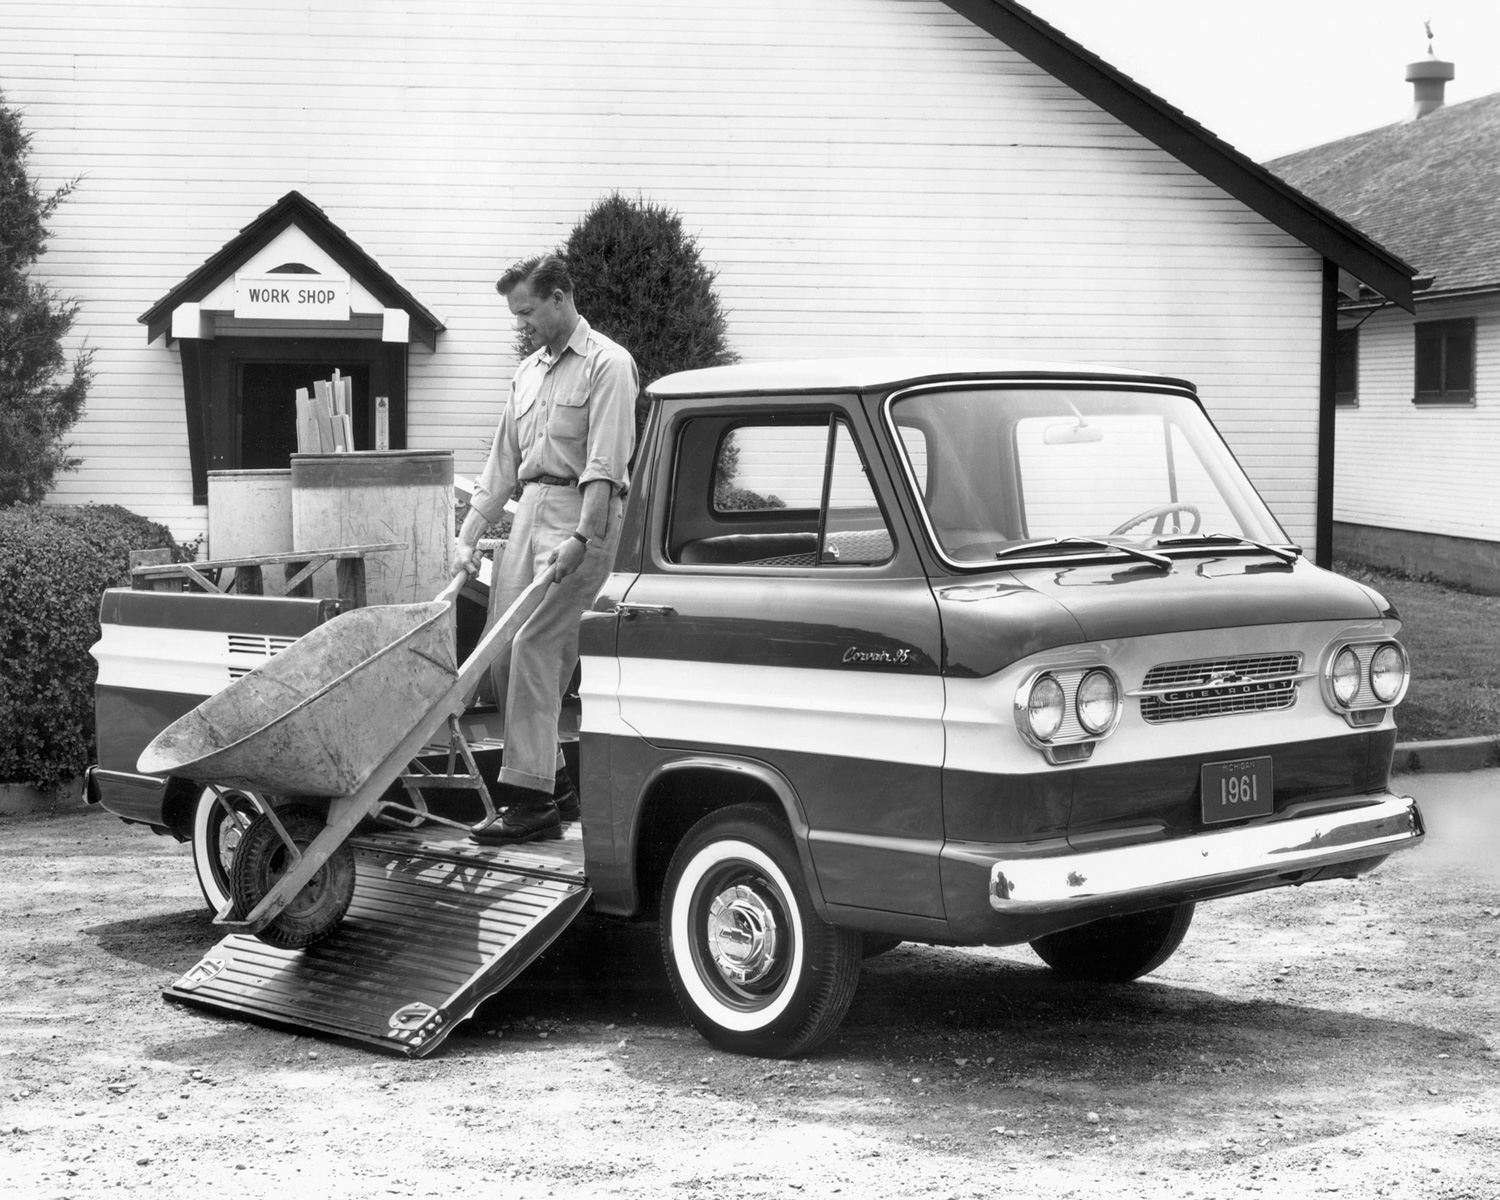 Chevrolet Corvair rampside wheelbarrow